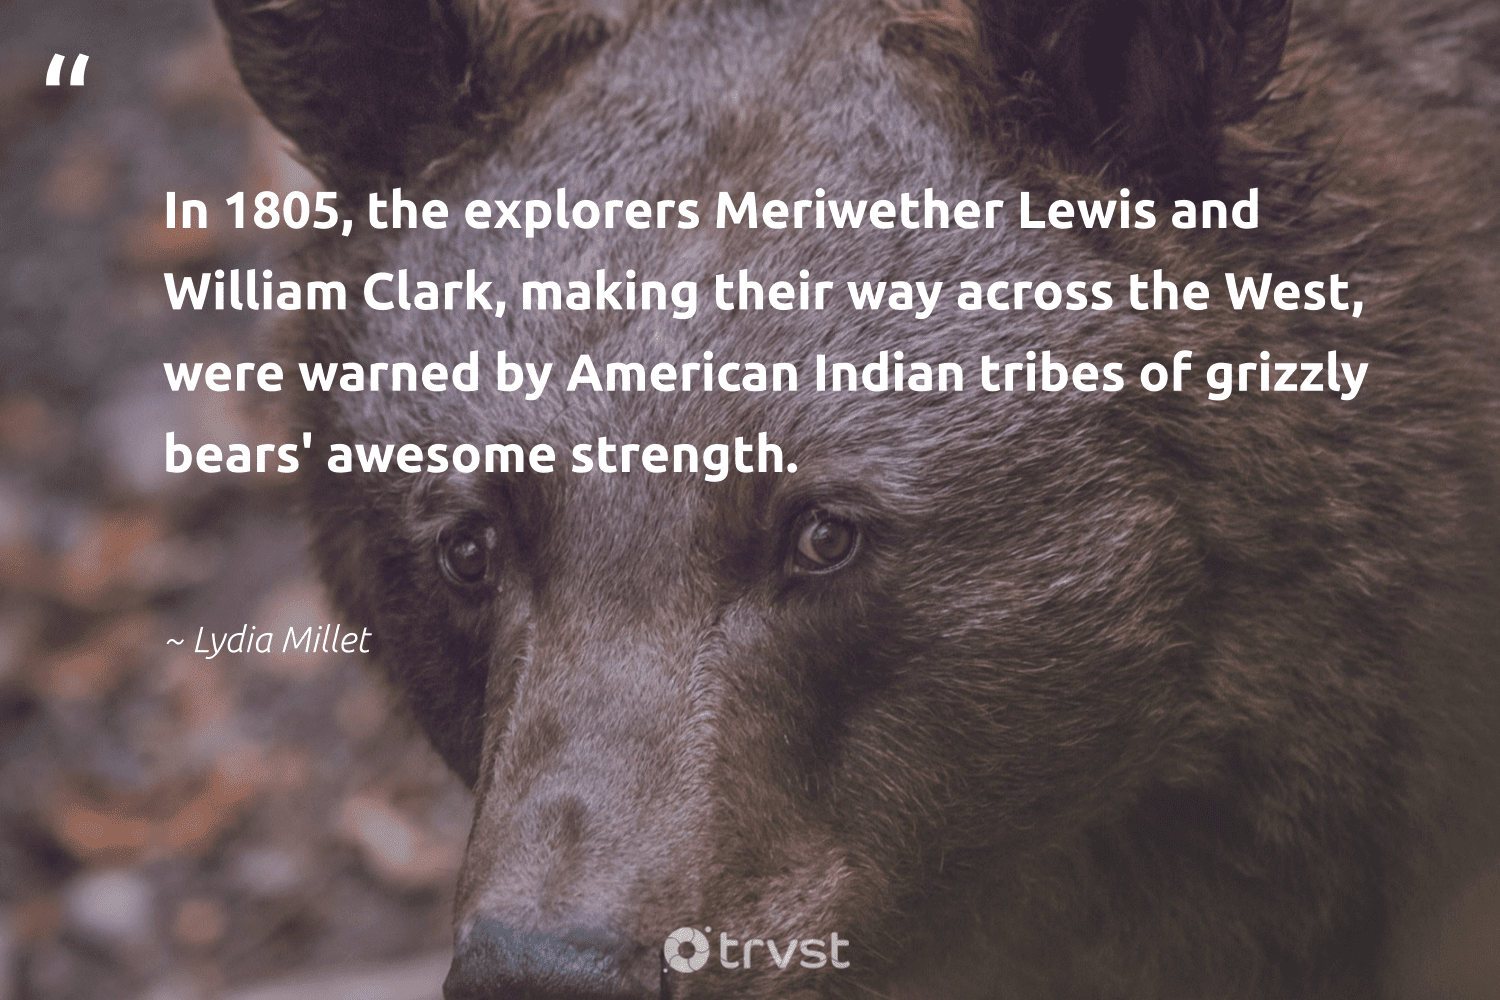 """""""In 1805, the explorers Meriwether Lewis and William Clark, making their way across the West, were warned by American Indian tribes of grizzly bears' awesome strength.""""  - Lydia Millet #trvst #quotes #bears #biodiversity #beinspired #conservation #socialchange #sustainability #ecoconscious #splendidanimals #bethechange #wild"""